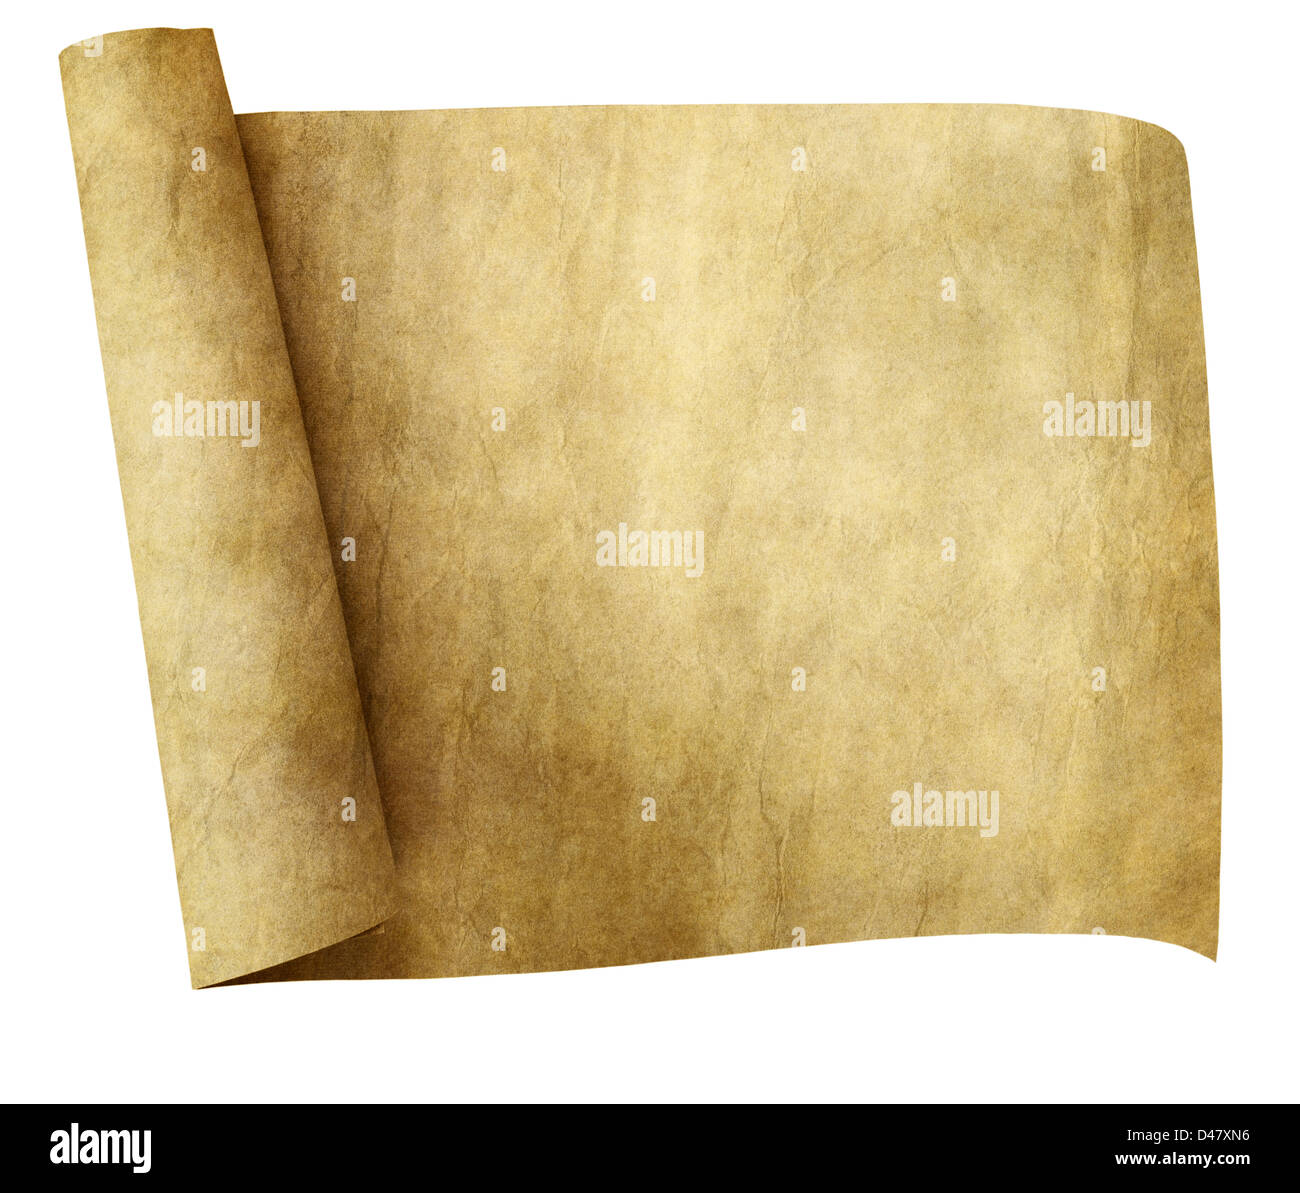 old parchment paper scroll isolated on white background stock photo